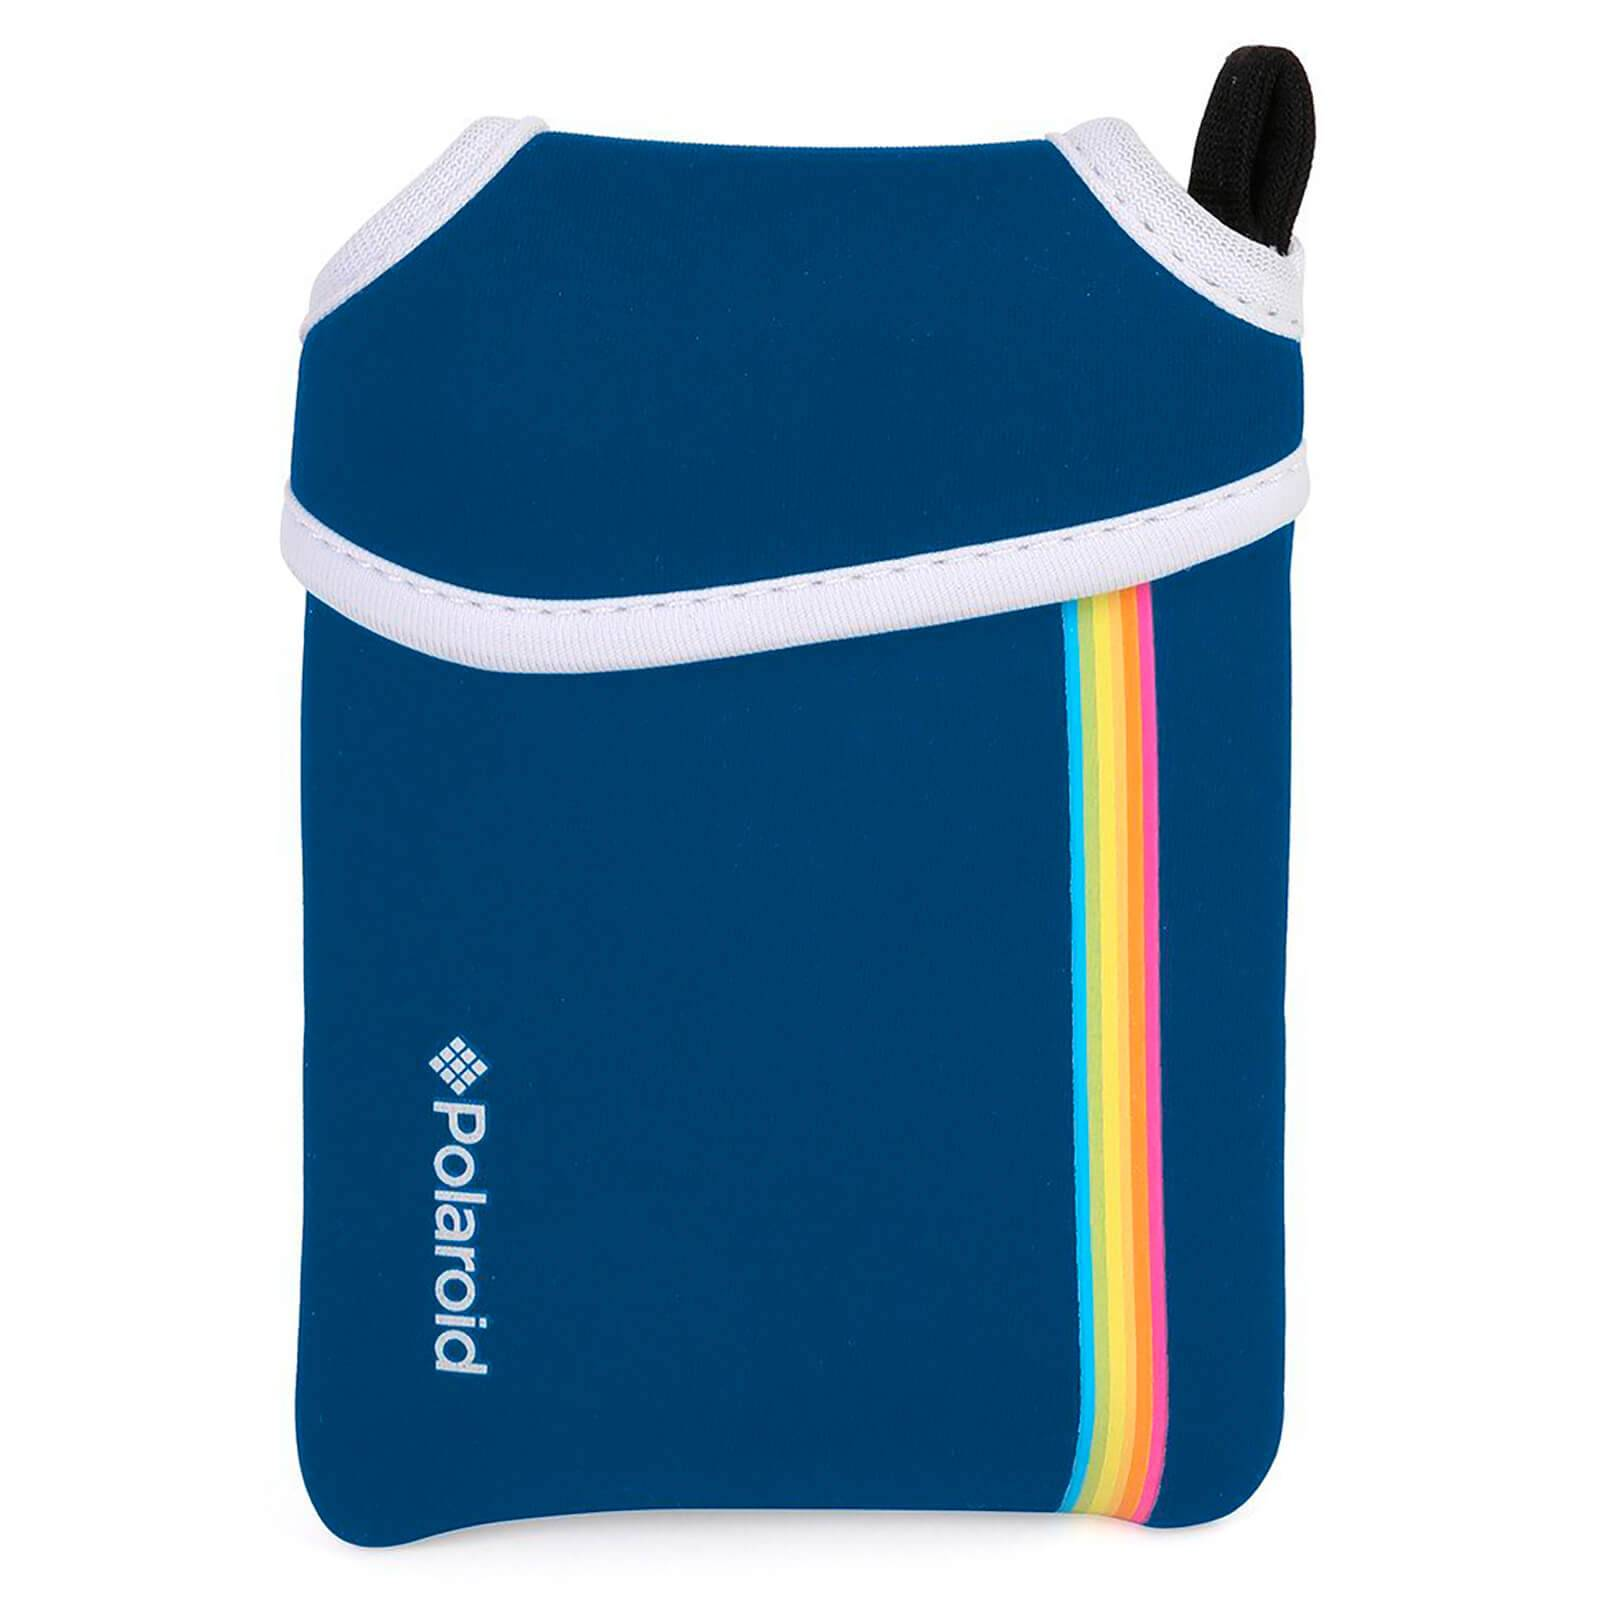 Polaroid Neoprene Pouch (For Snap Instant Digital Print Camera) - Blue